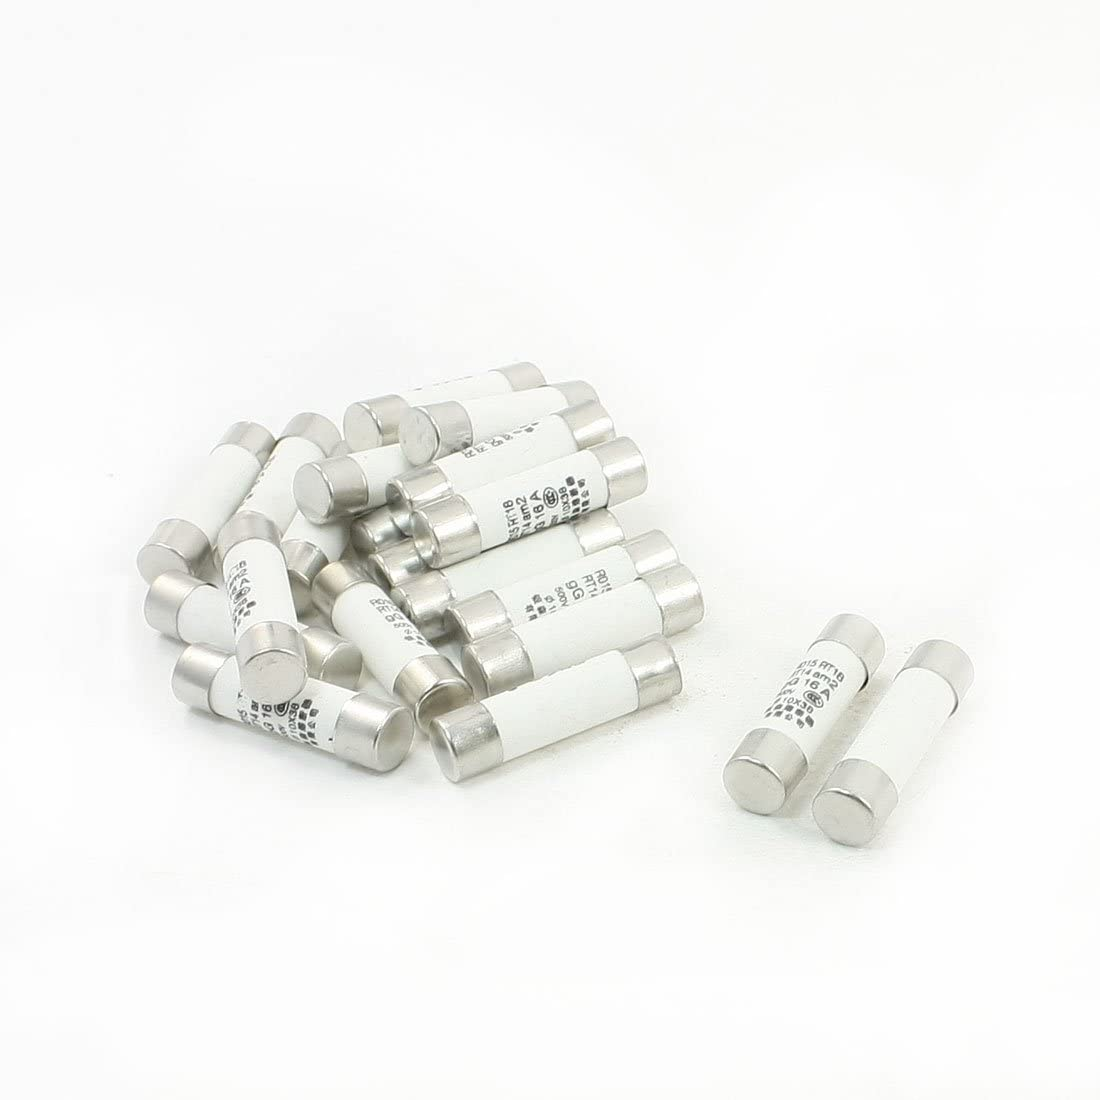 uxcell 20 Pcs 500V 10A 10x38mm Cylindrical Ceramic Tube Fuses Link R015 RT14 RT18 RT19 TRTAXCEEGF9109